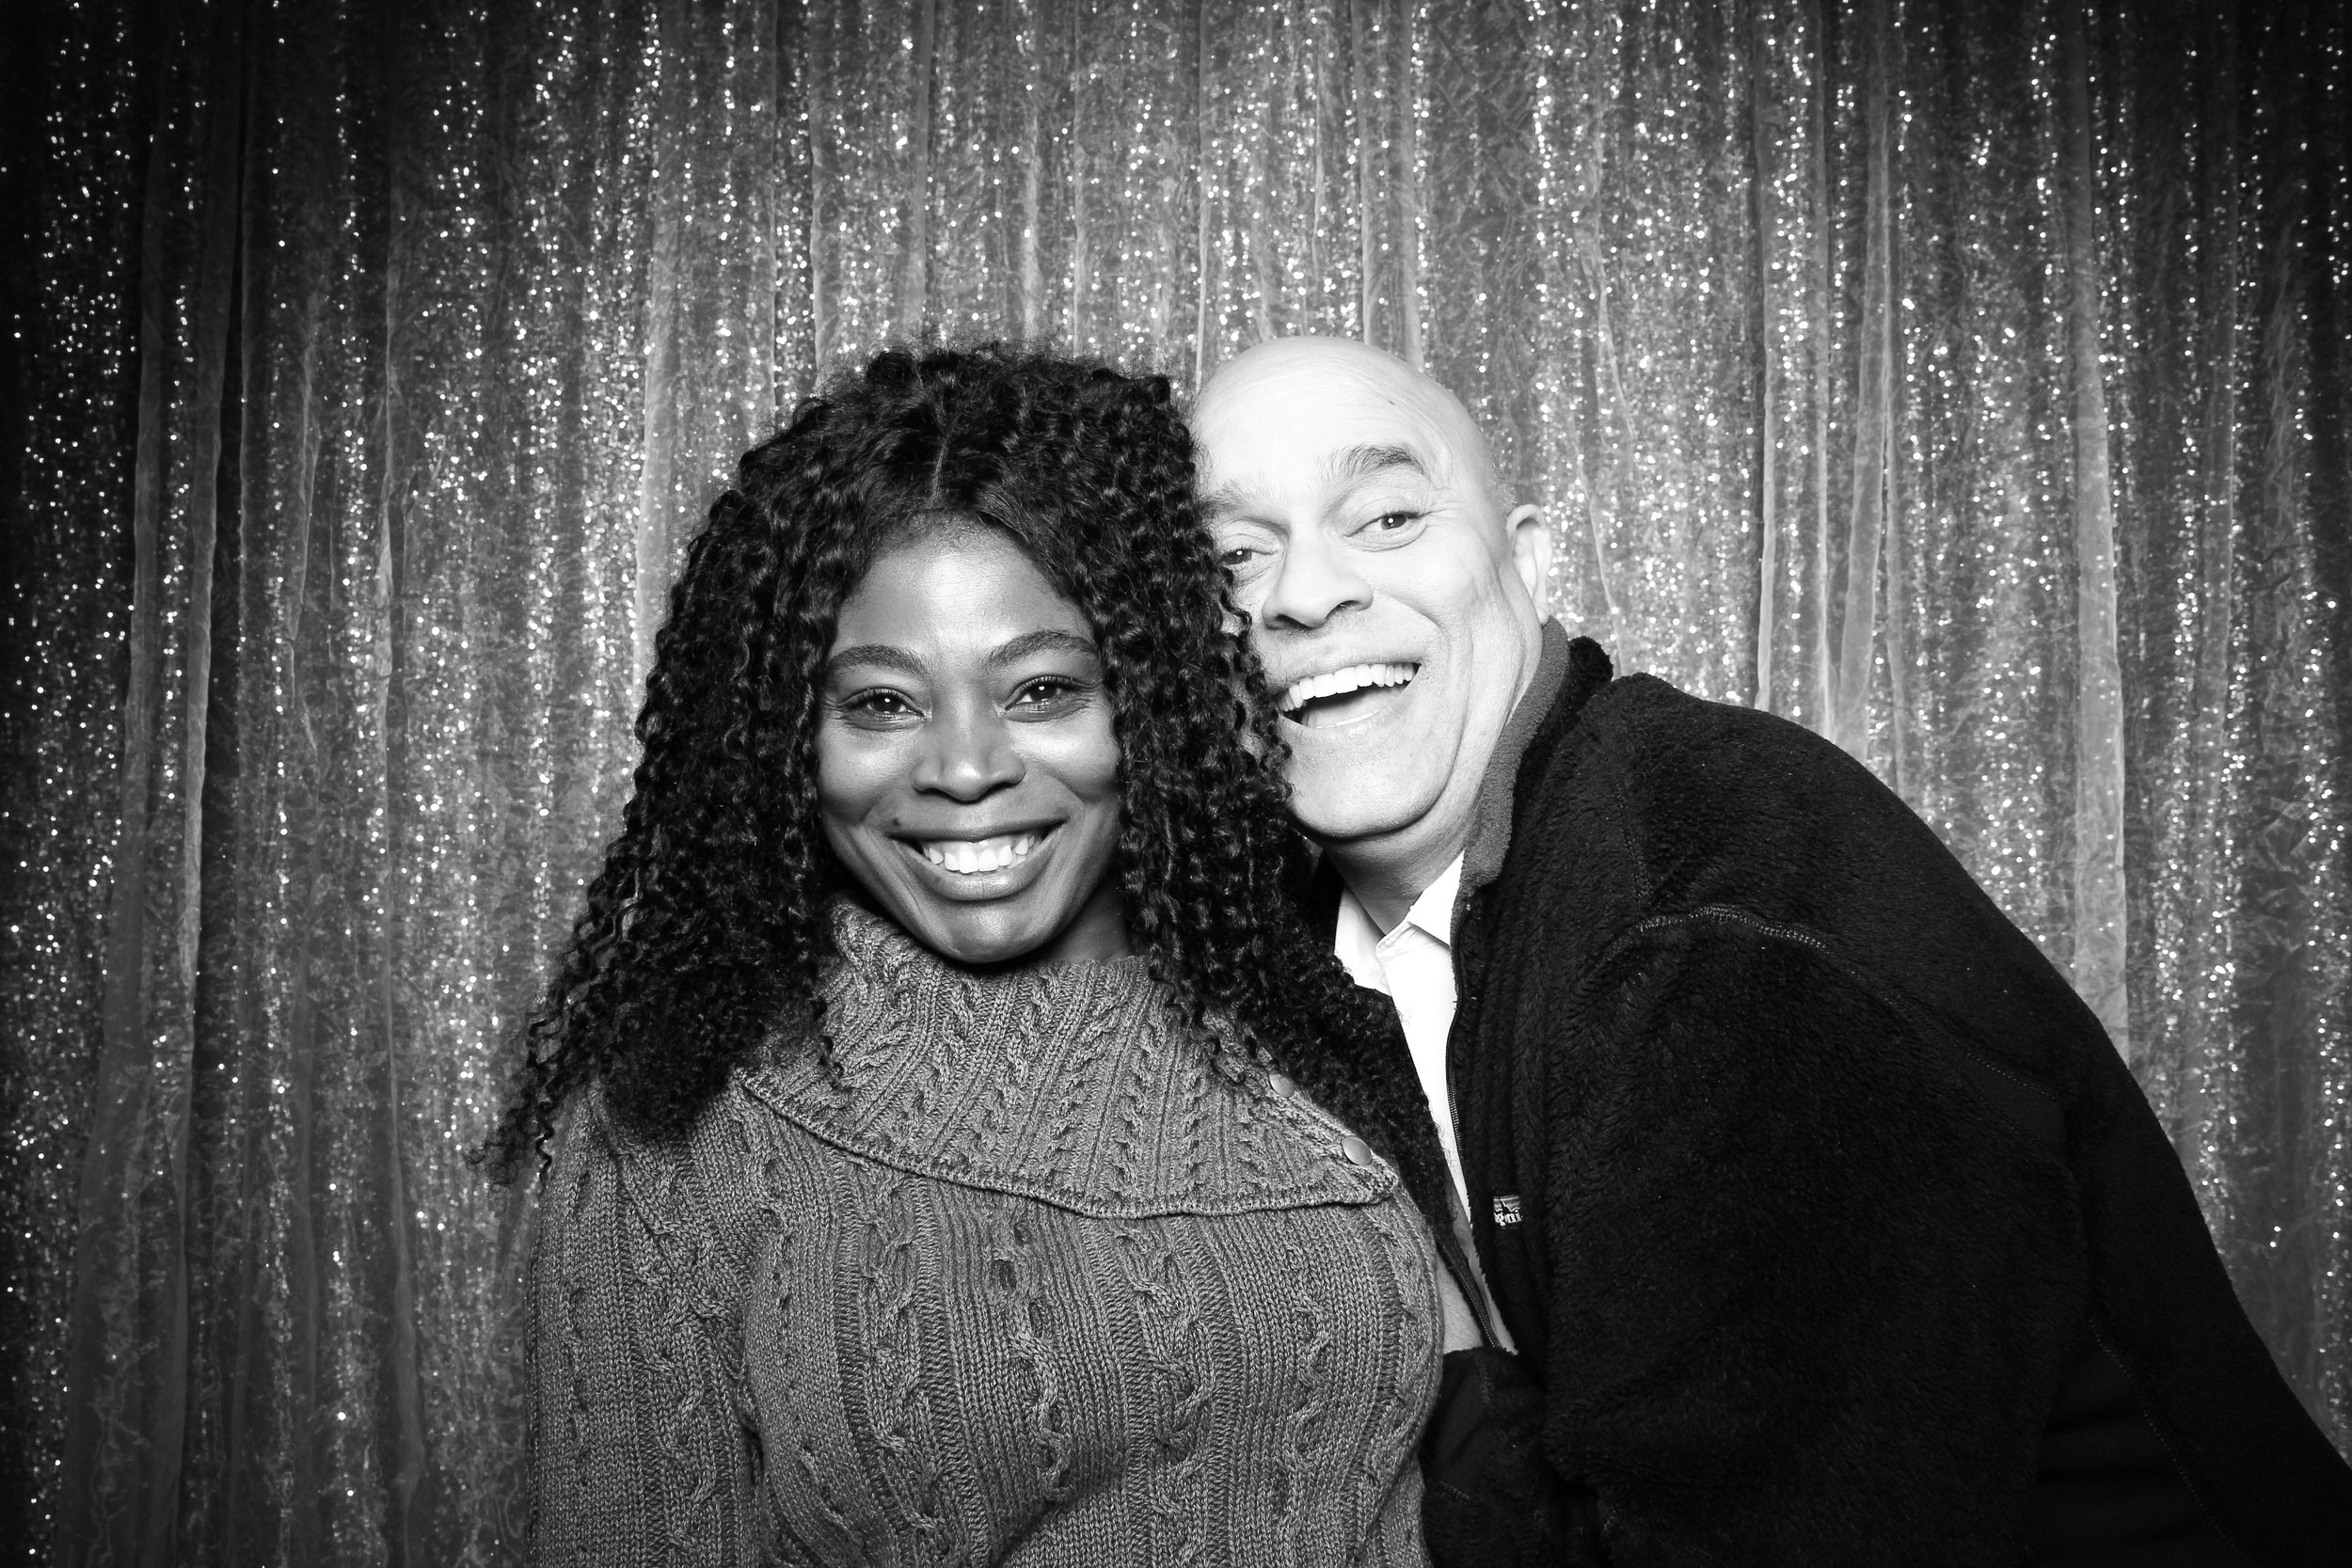 Chicago_Vintage_Wedding_Photobooth_Downers_Grove_04.jpg